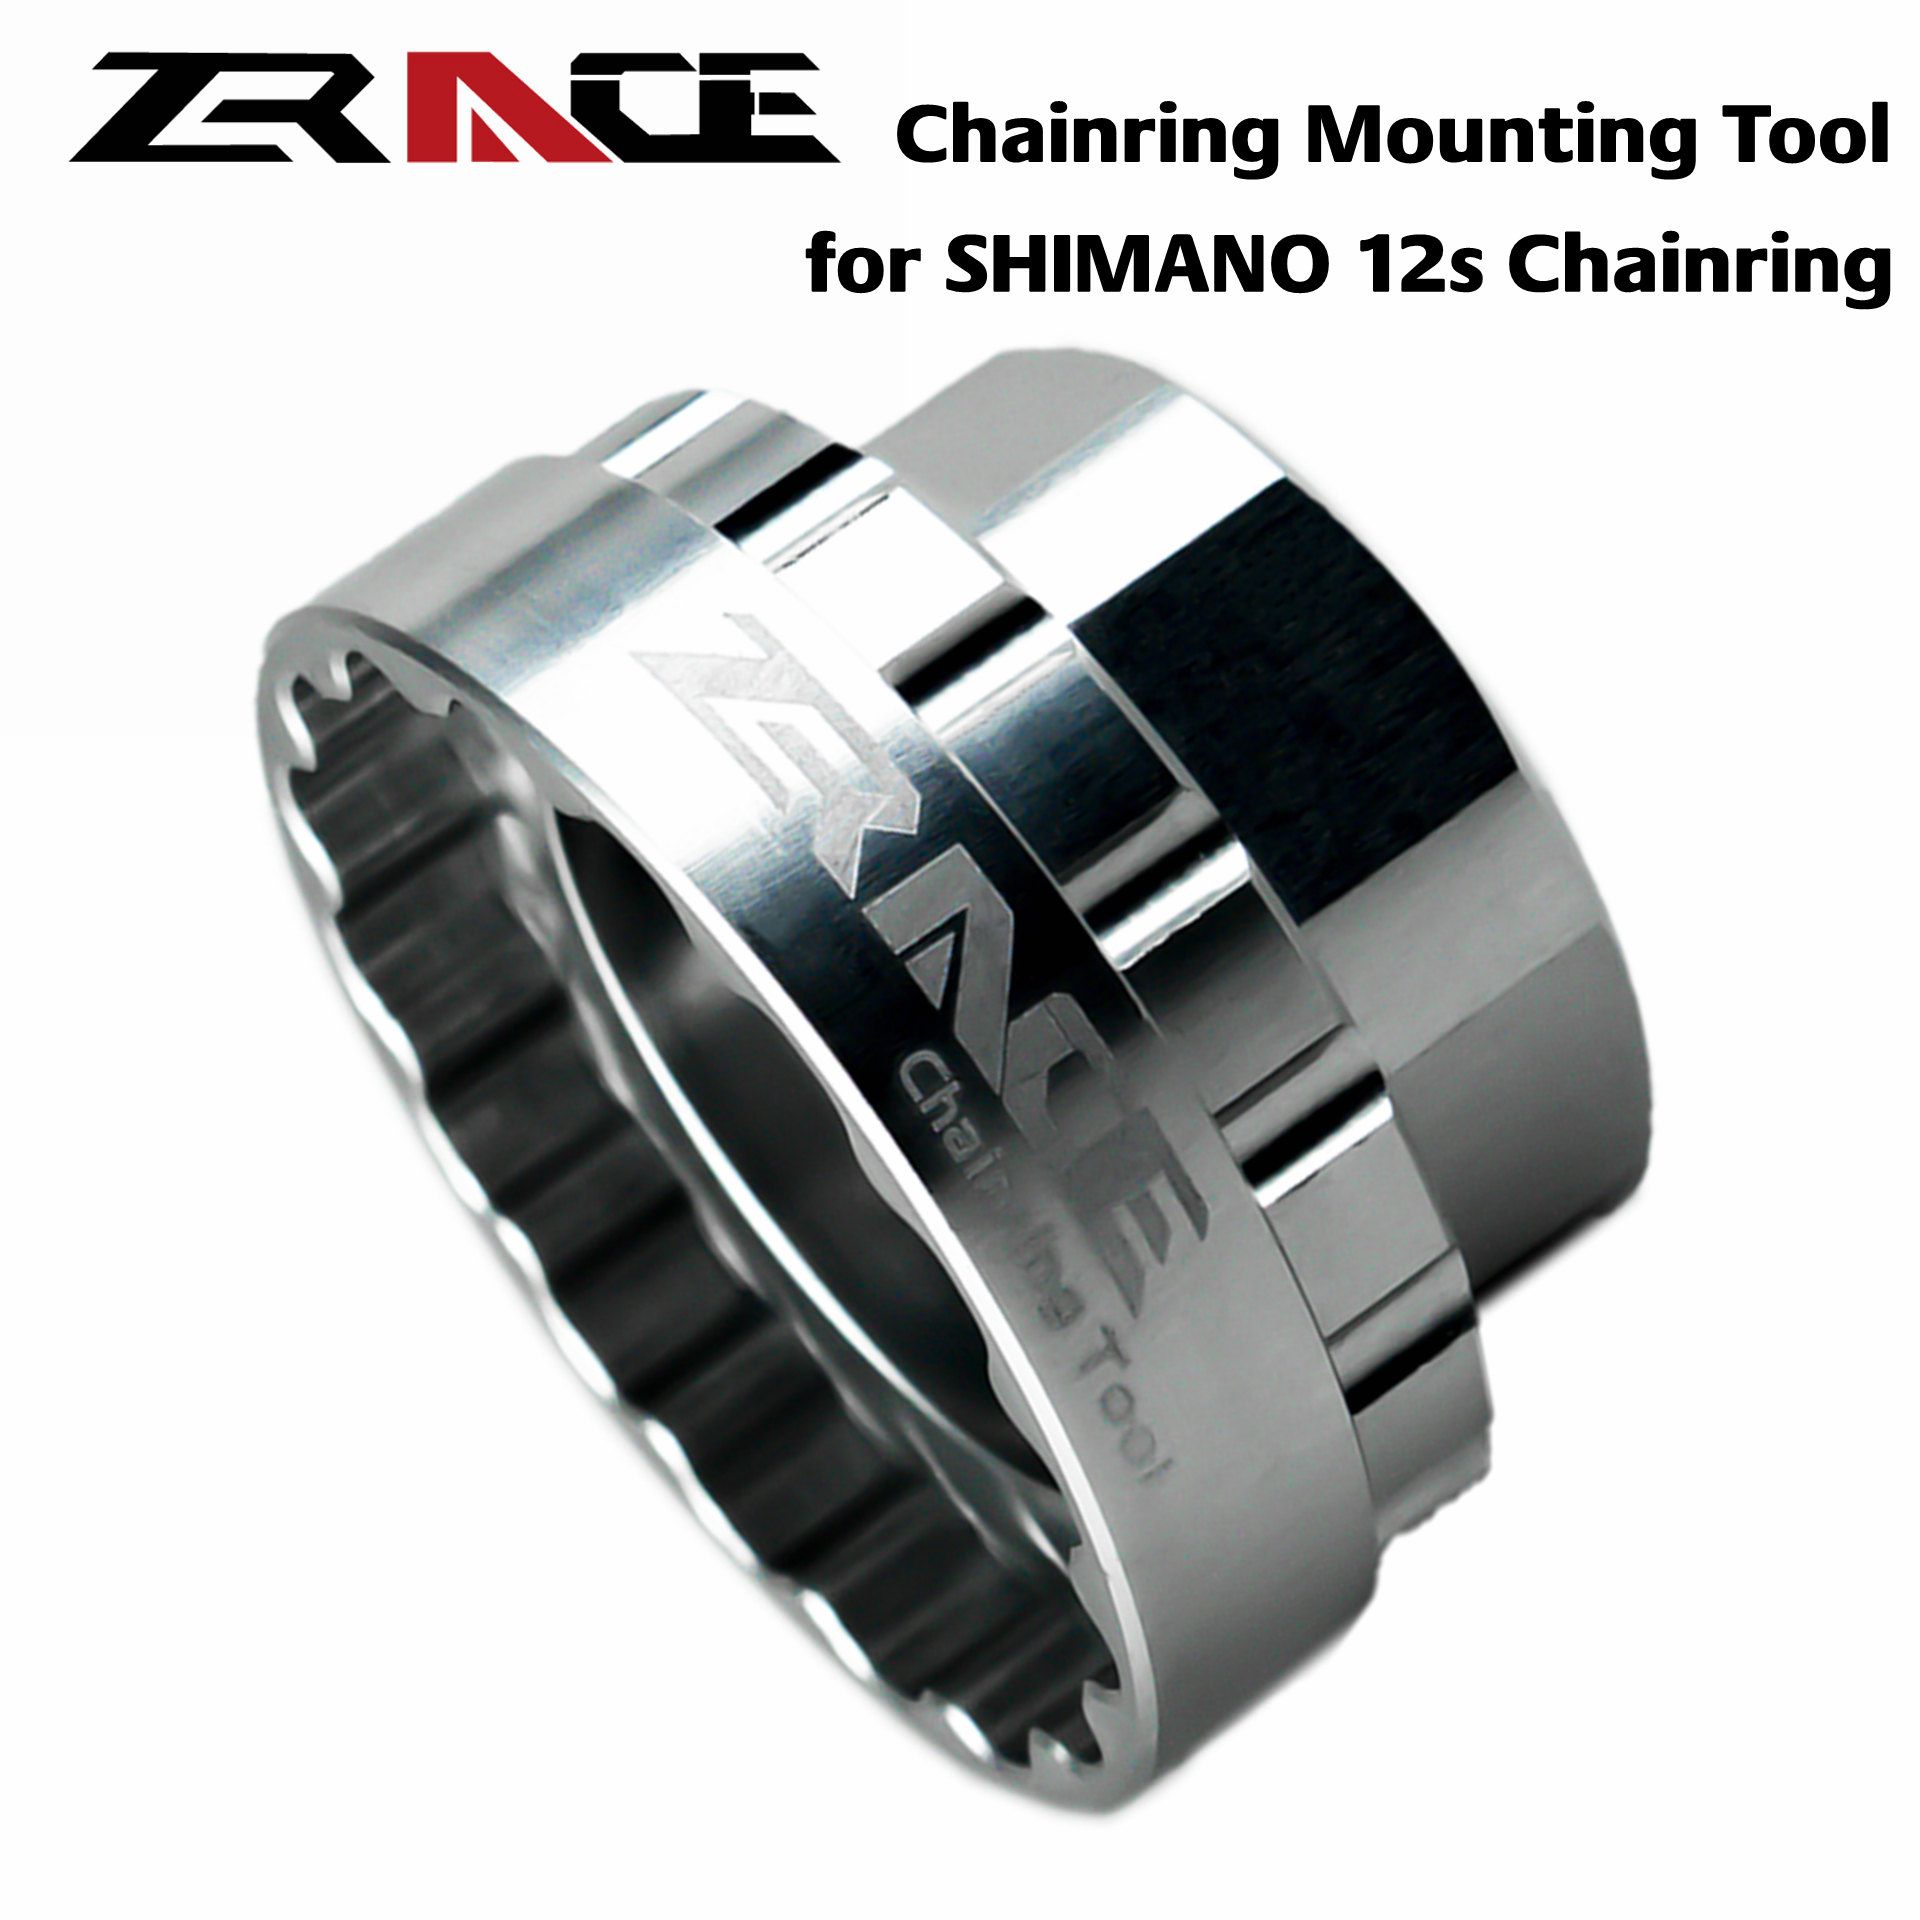 ZRACE Shimano 12s Chainrings Mounting Tool for SM CRM95 / SM CRM85 / SM CRM75, TL FC41 / FC41,Direct Mount Repair Tool Crankset|Bicycle Repair Tools|   - AliExpress